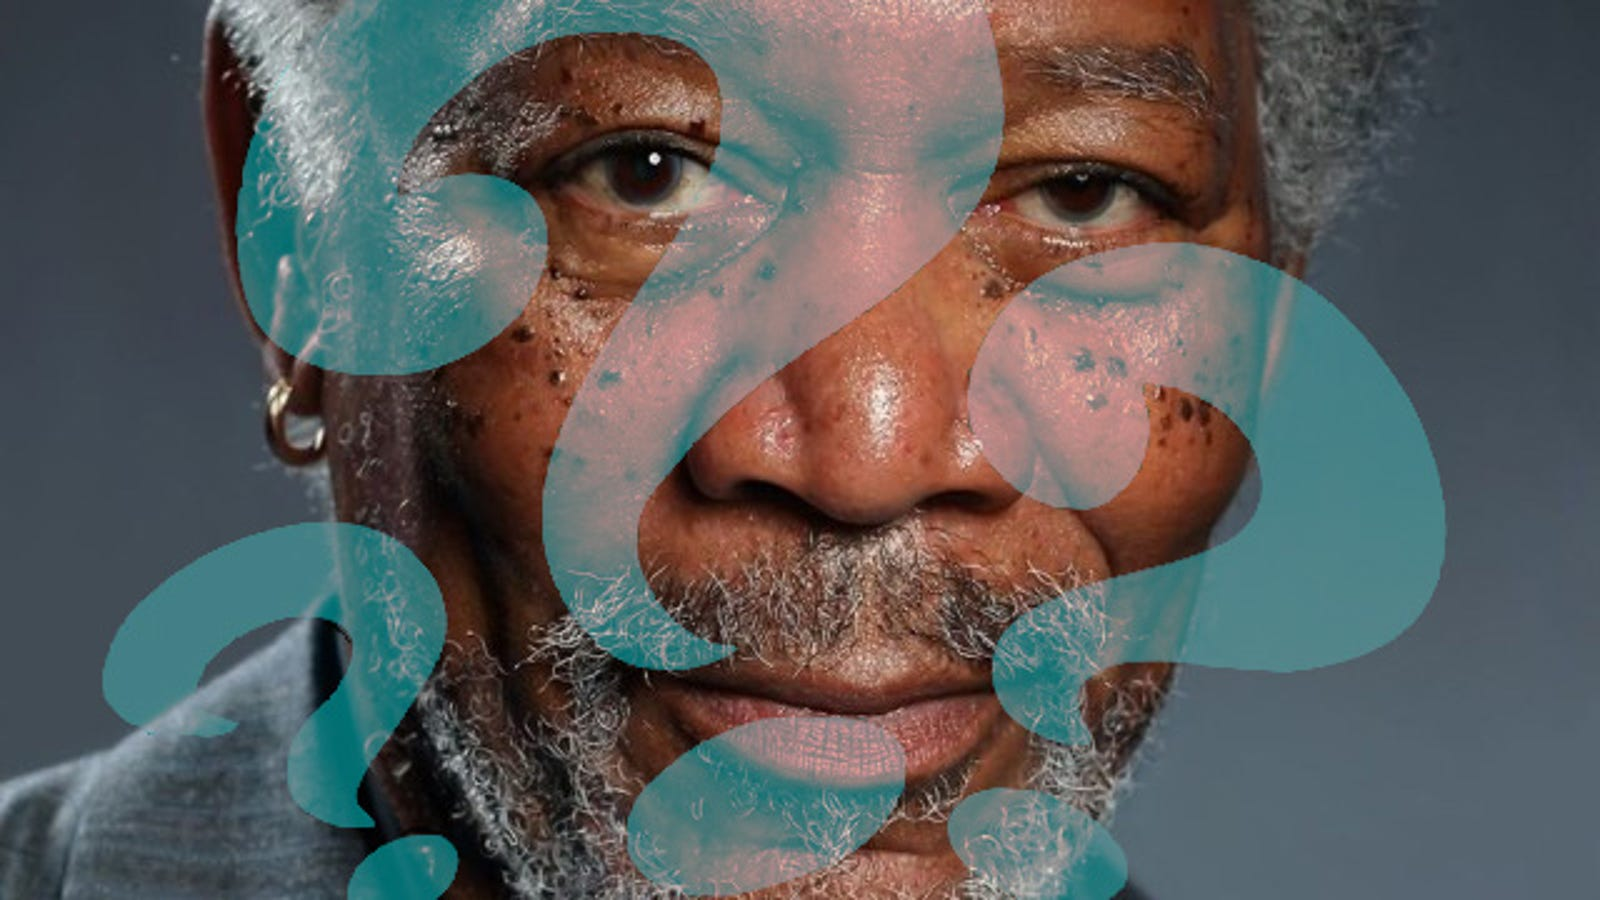 The Insane Morgan Freeman iPad Painting: An Investigation in Four Acts